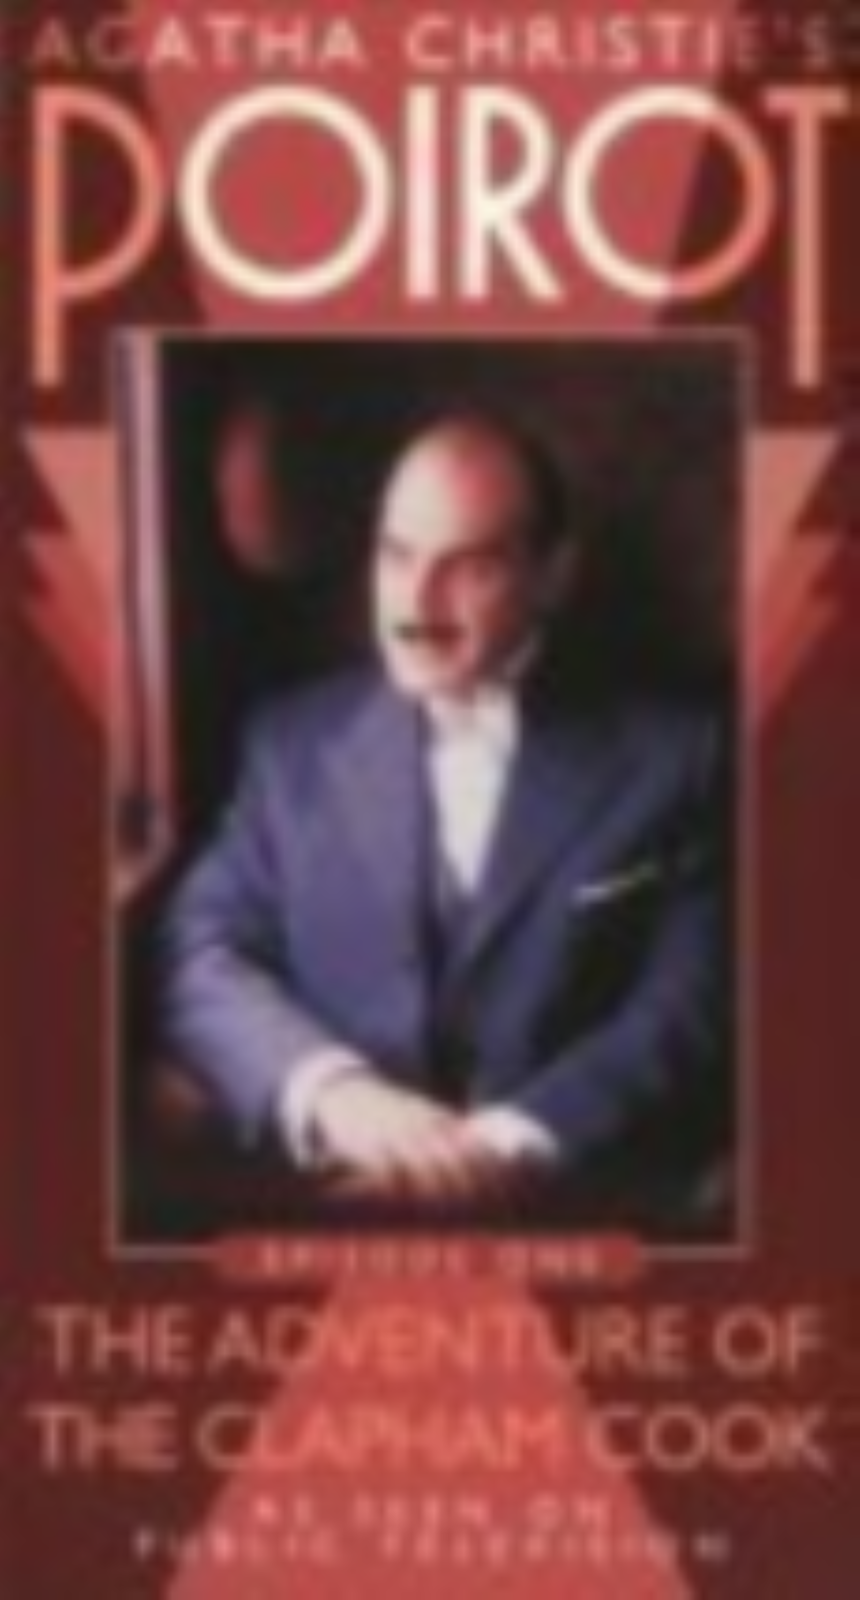 Poirot Episode One - Adventure of the Clapham Cook Vhs